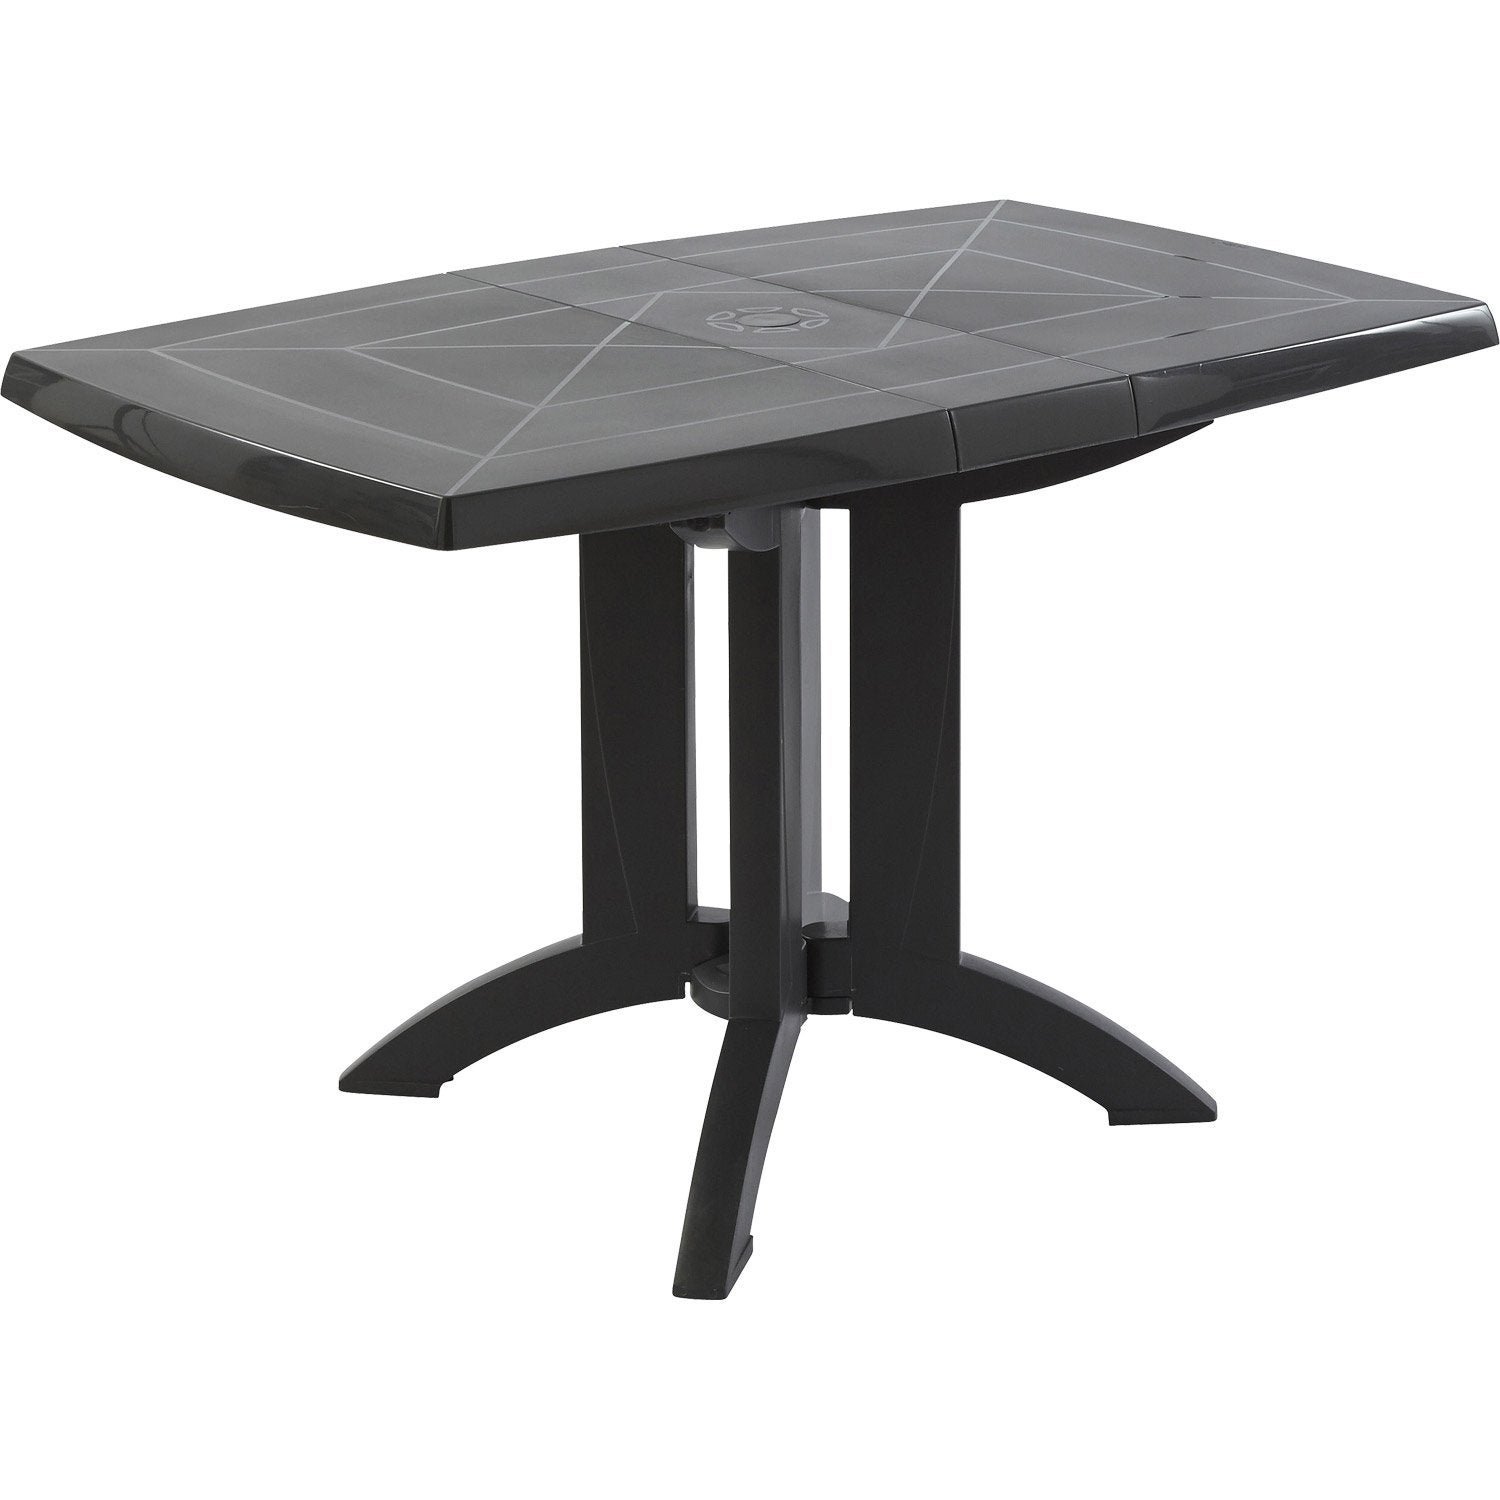 Table De Jardin Grosfillex V Ga Rectangulaire Anthracite 4